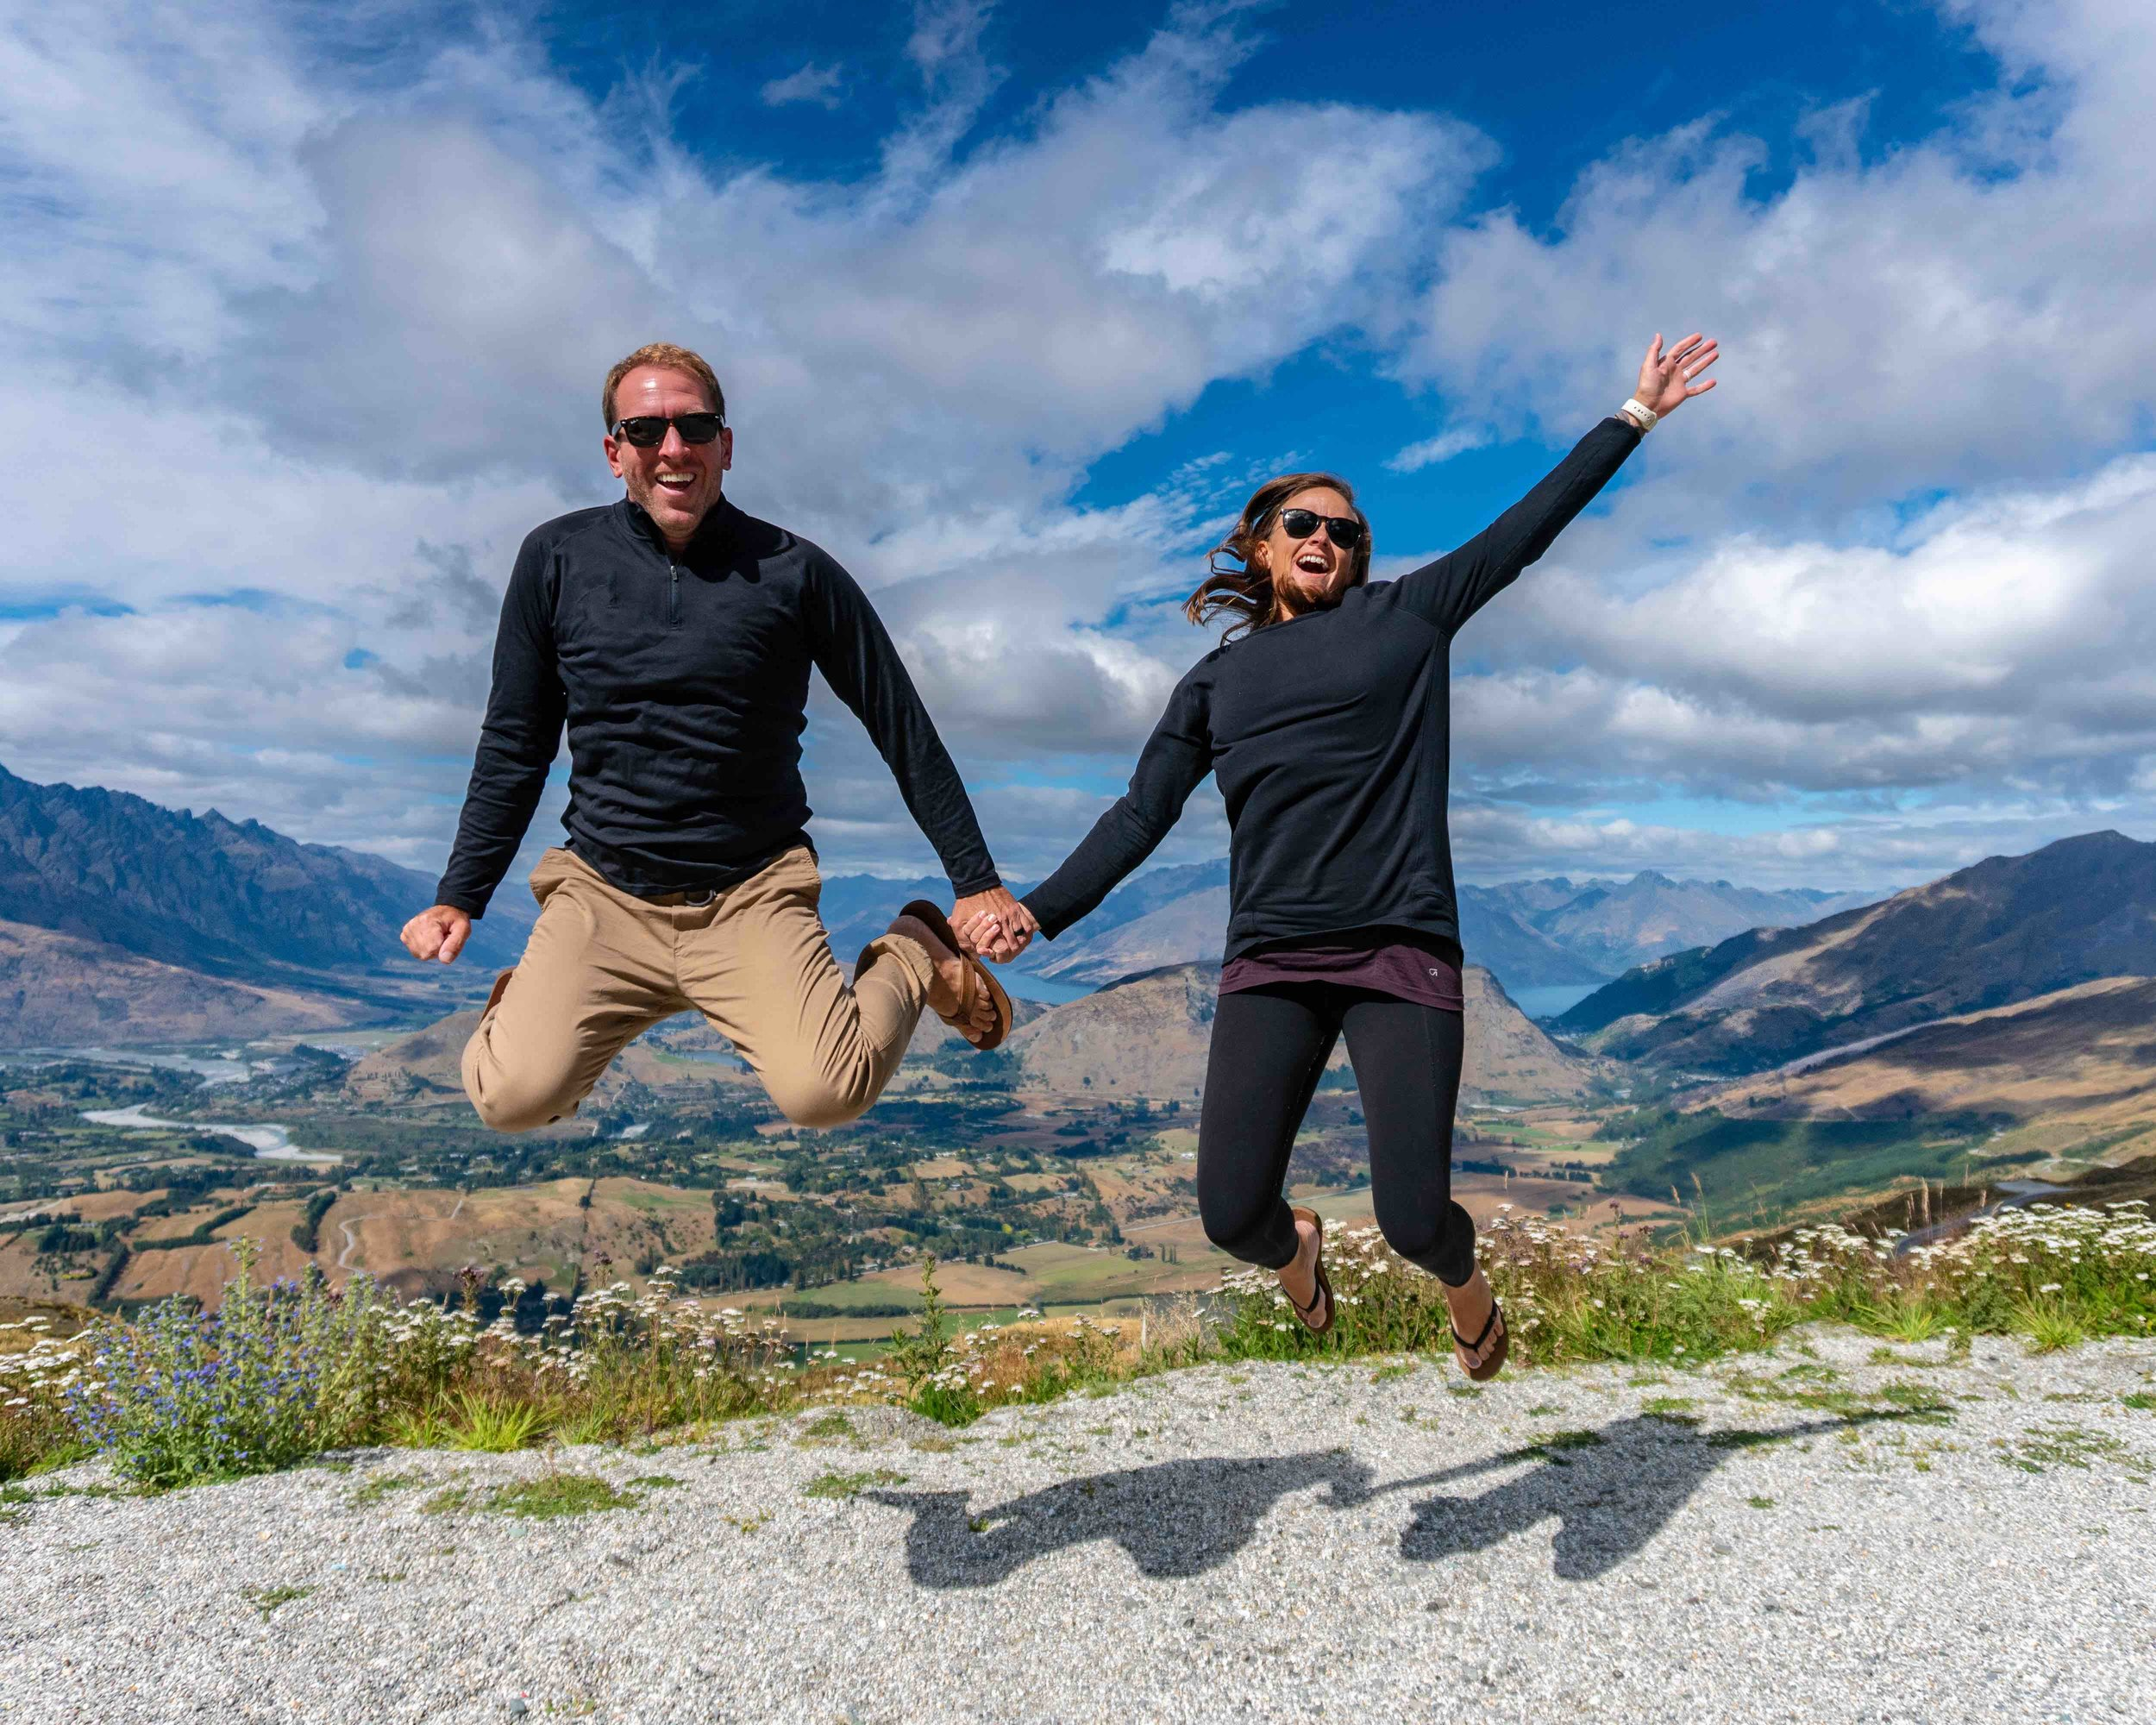 Lifestyle_couple_new zealand_queenstown_jumping_landscape_mountains_happy.jpg